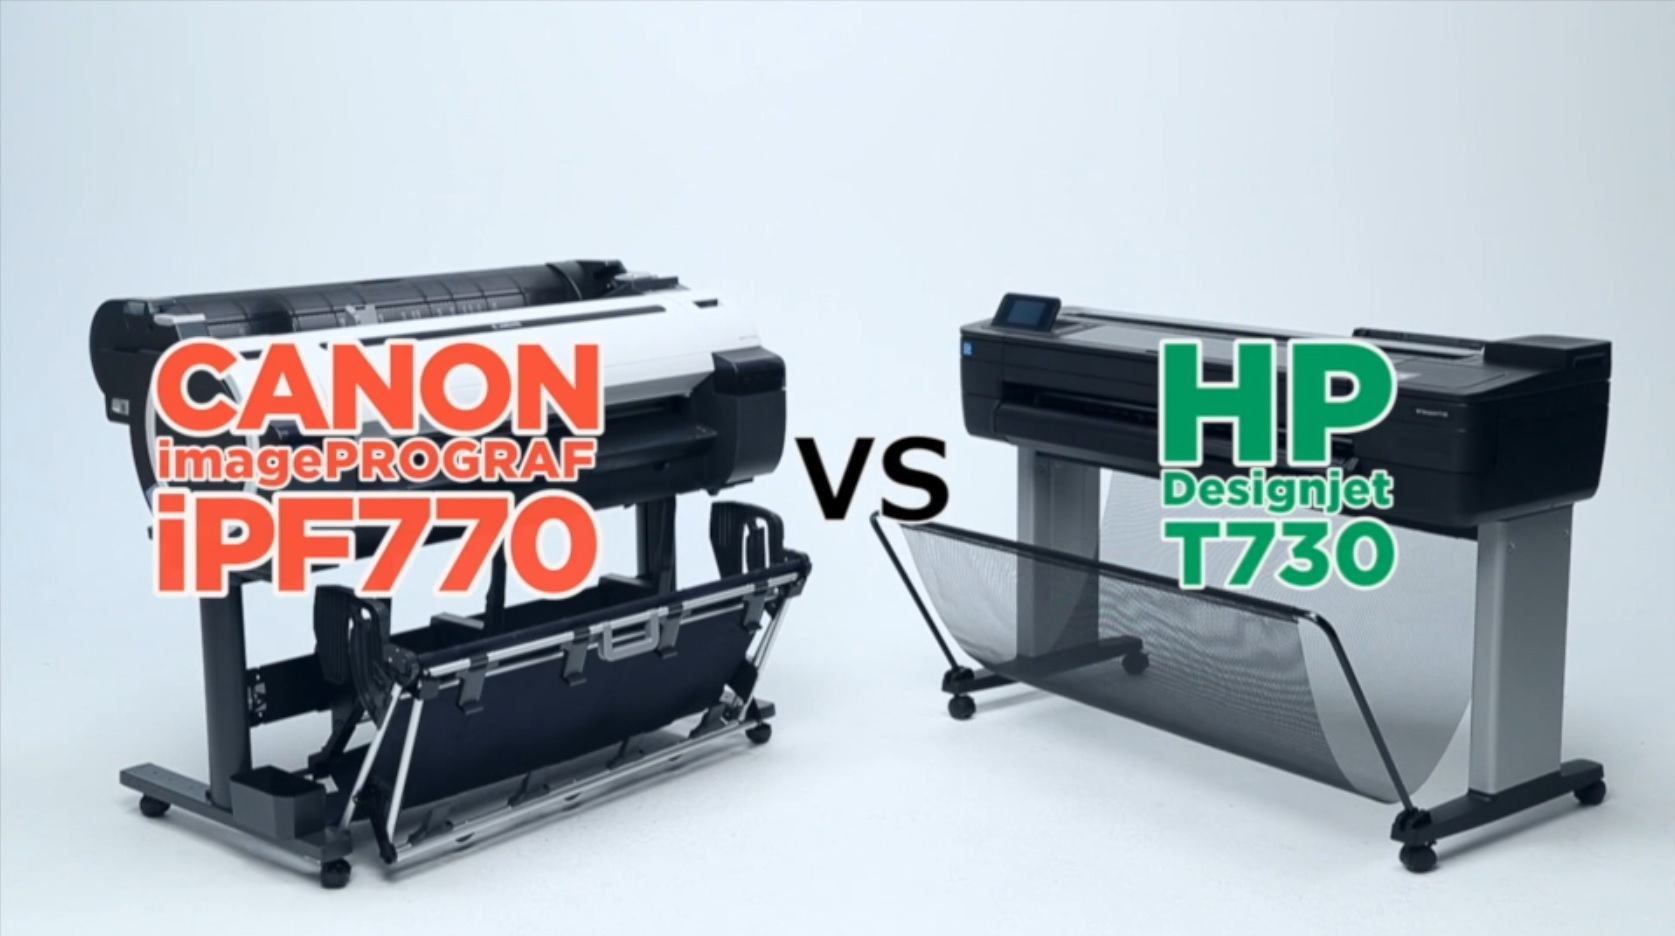 Canon iPF770 Vs HP T730 graphic